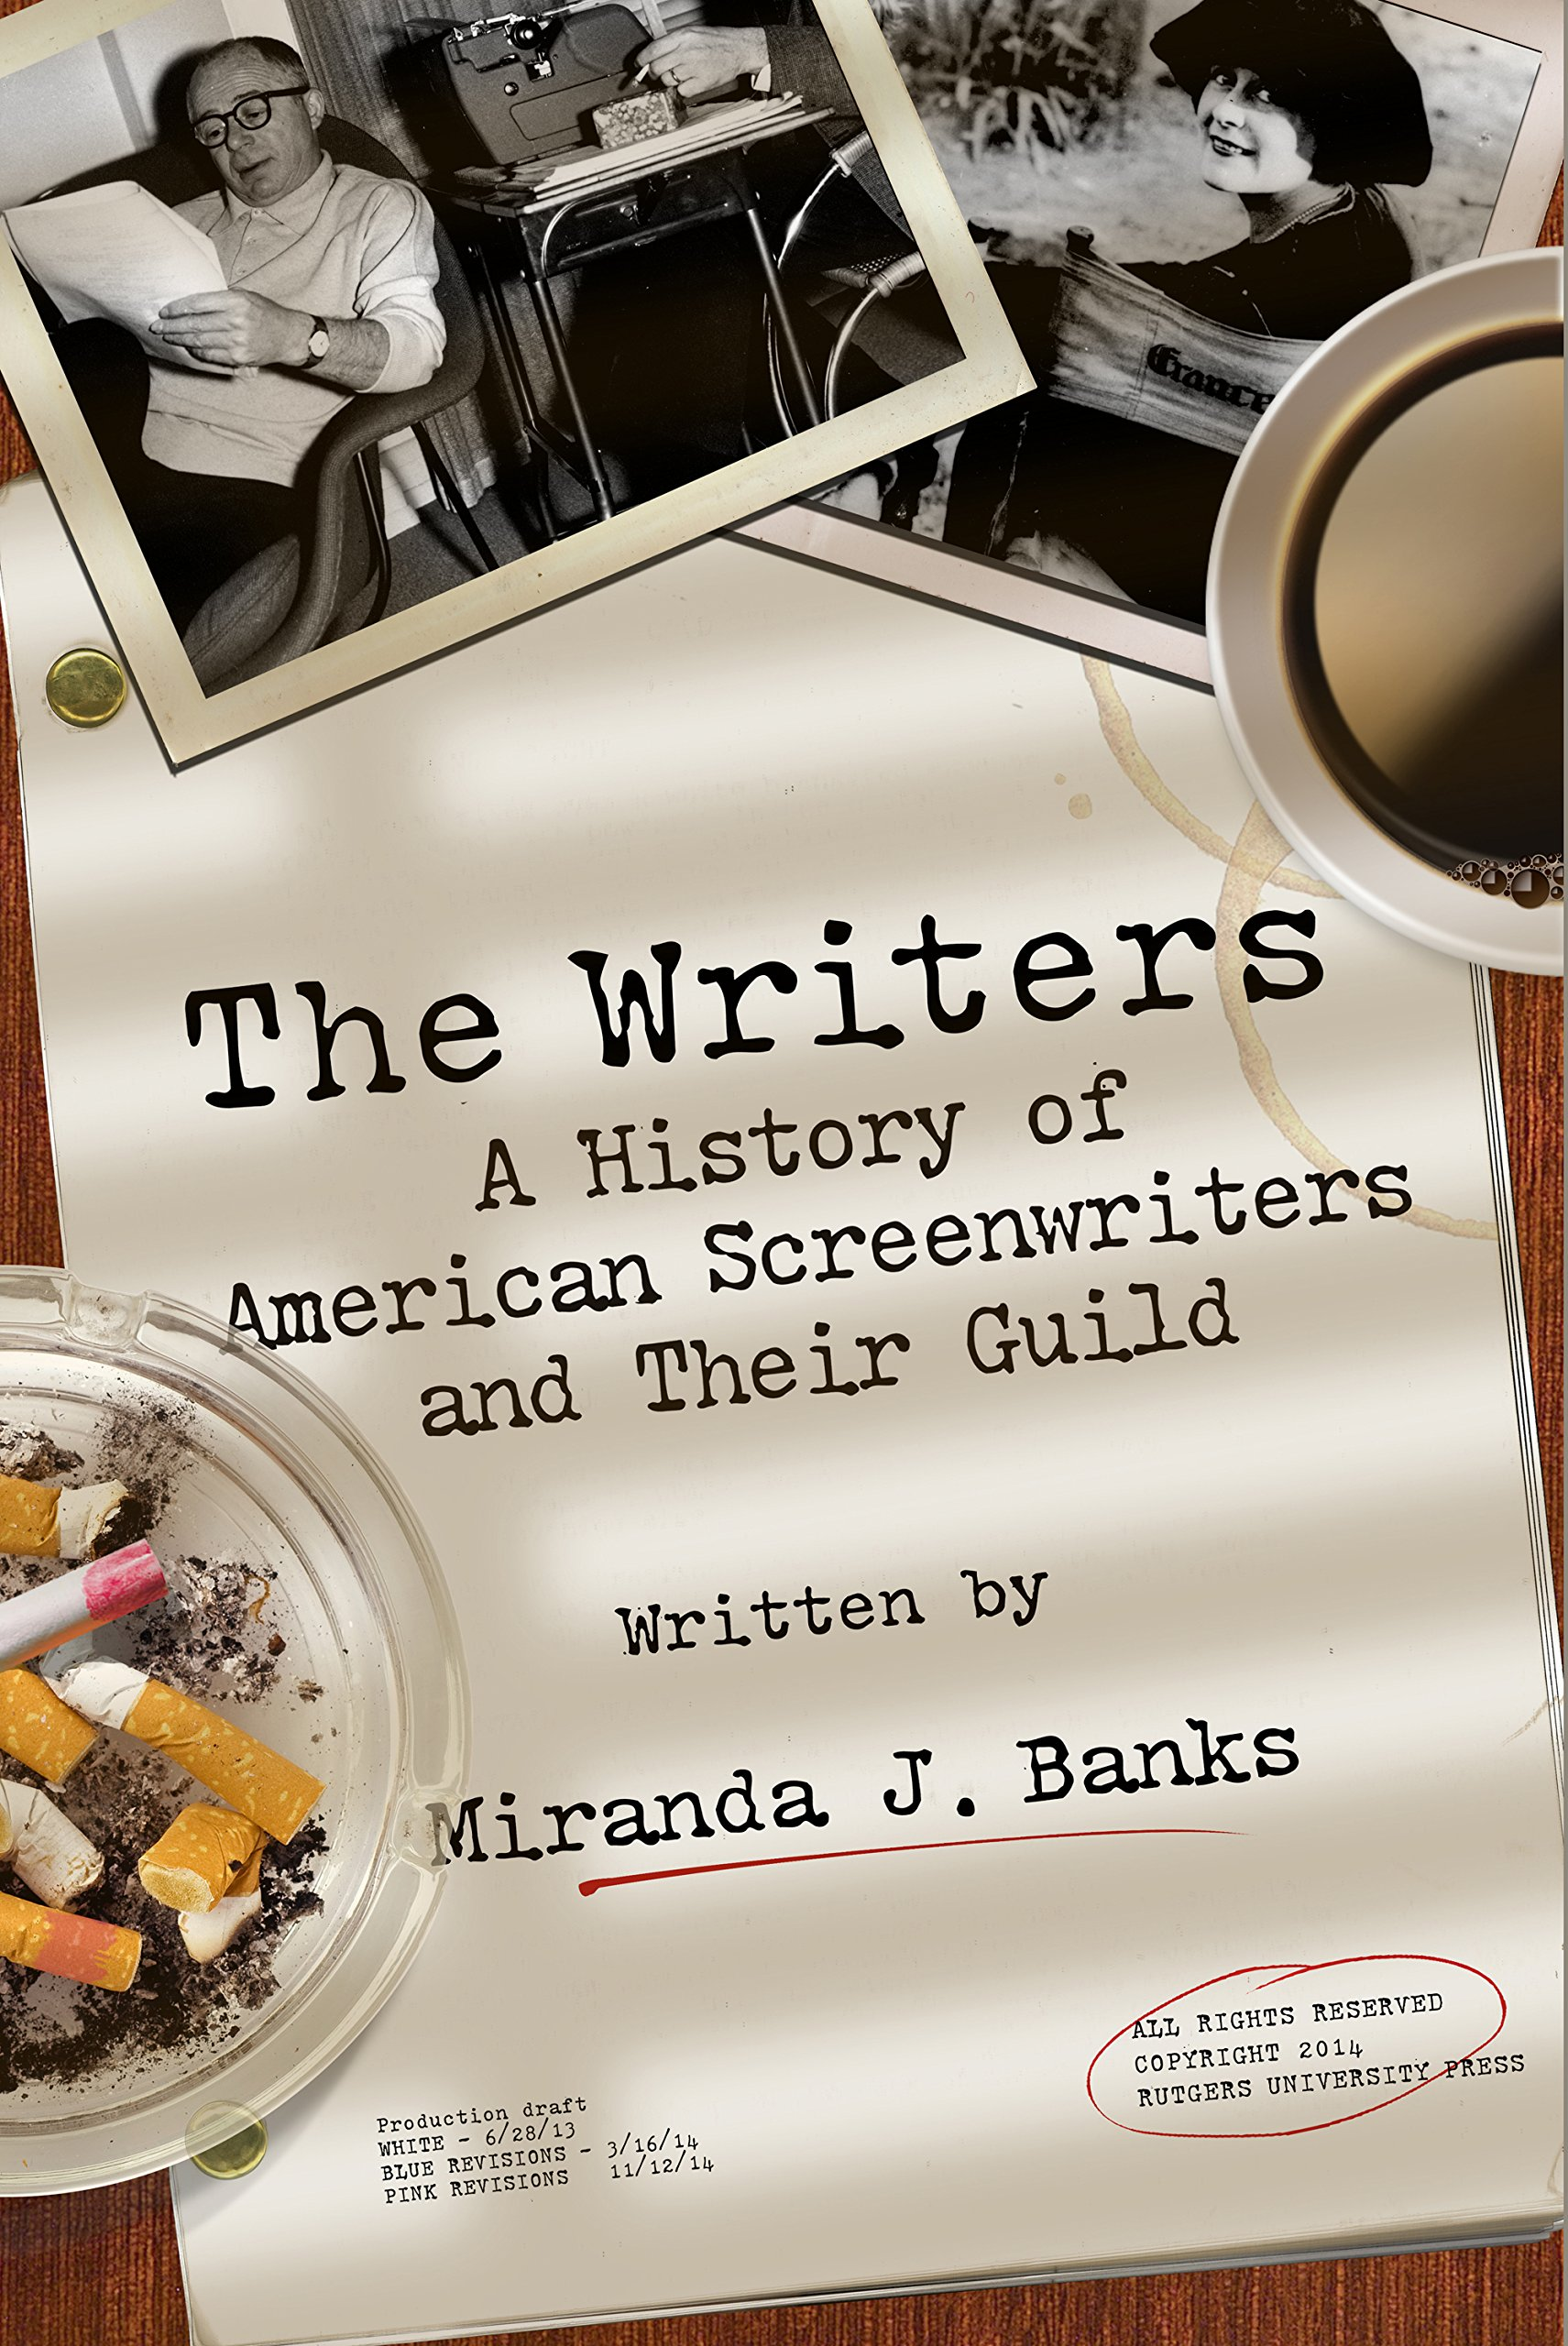 The Writers: A History of American Screenwriters and Their Guild